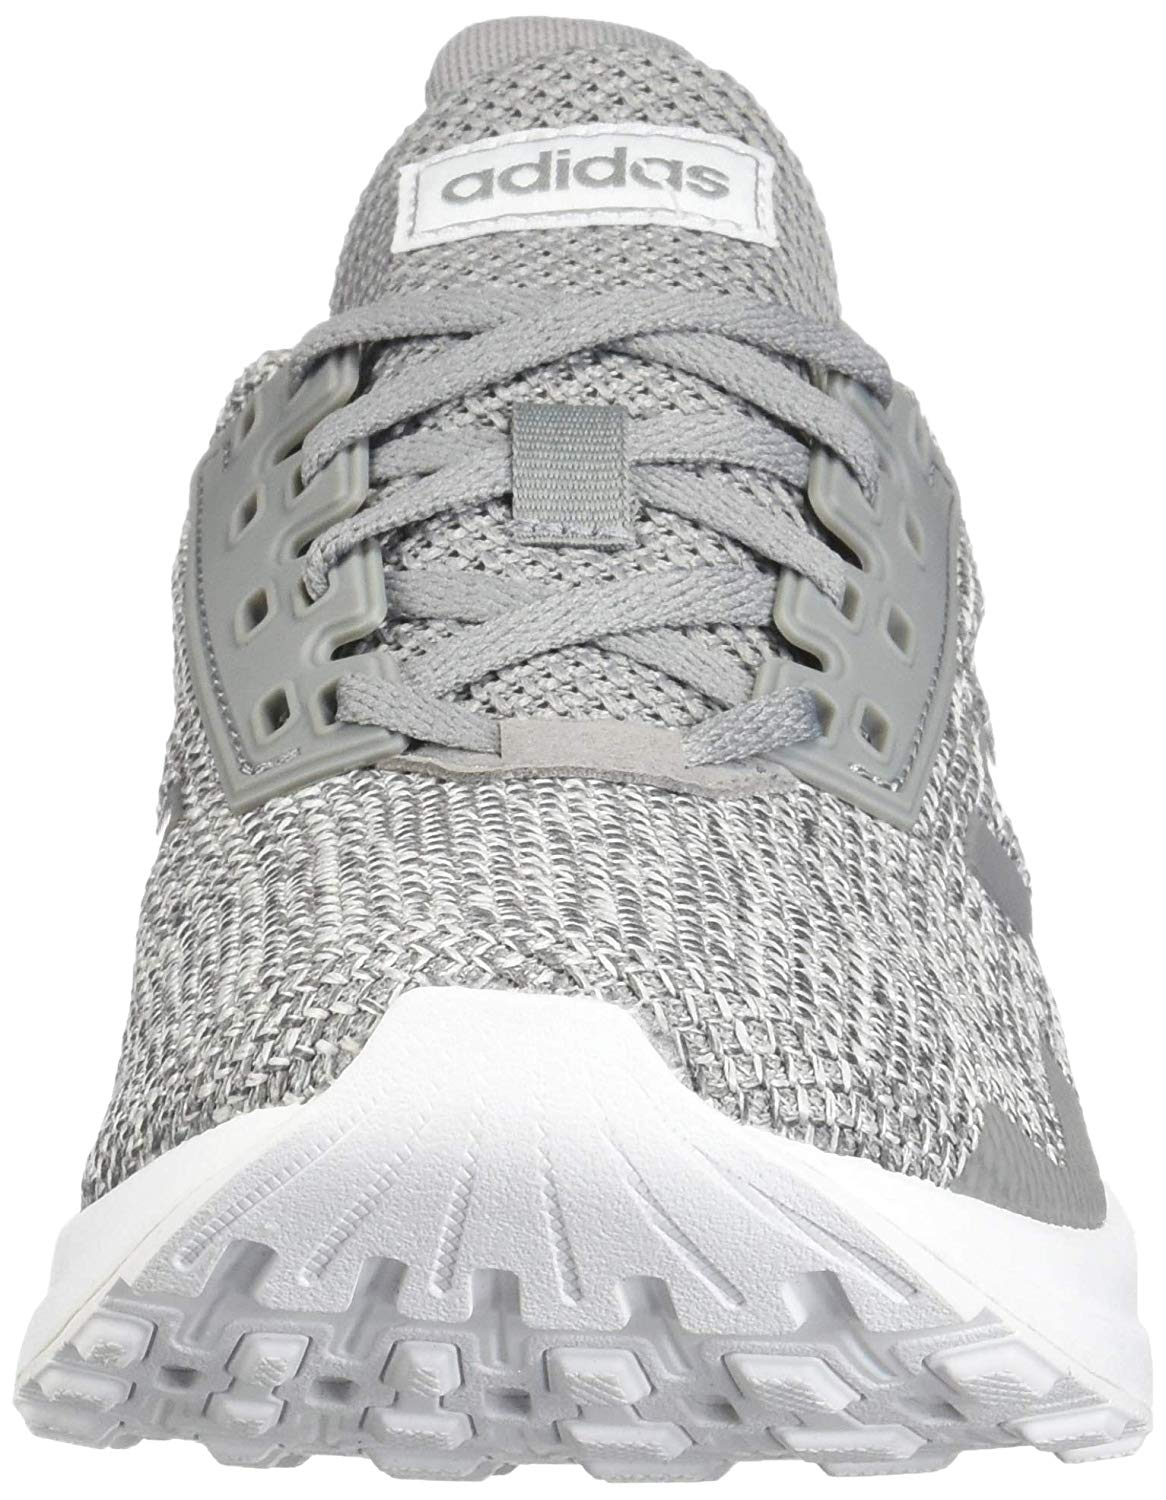 3acf56a94361a Details about adidas Kids' Duramo 9 Running Shoe, Grey/Grey/Grey, Size 2.5  Little Kid VtsV